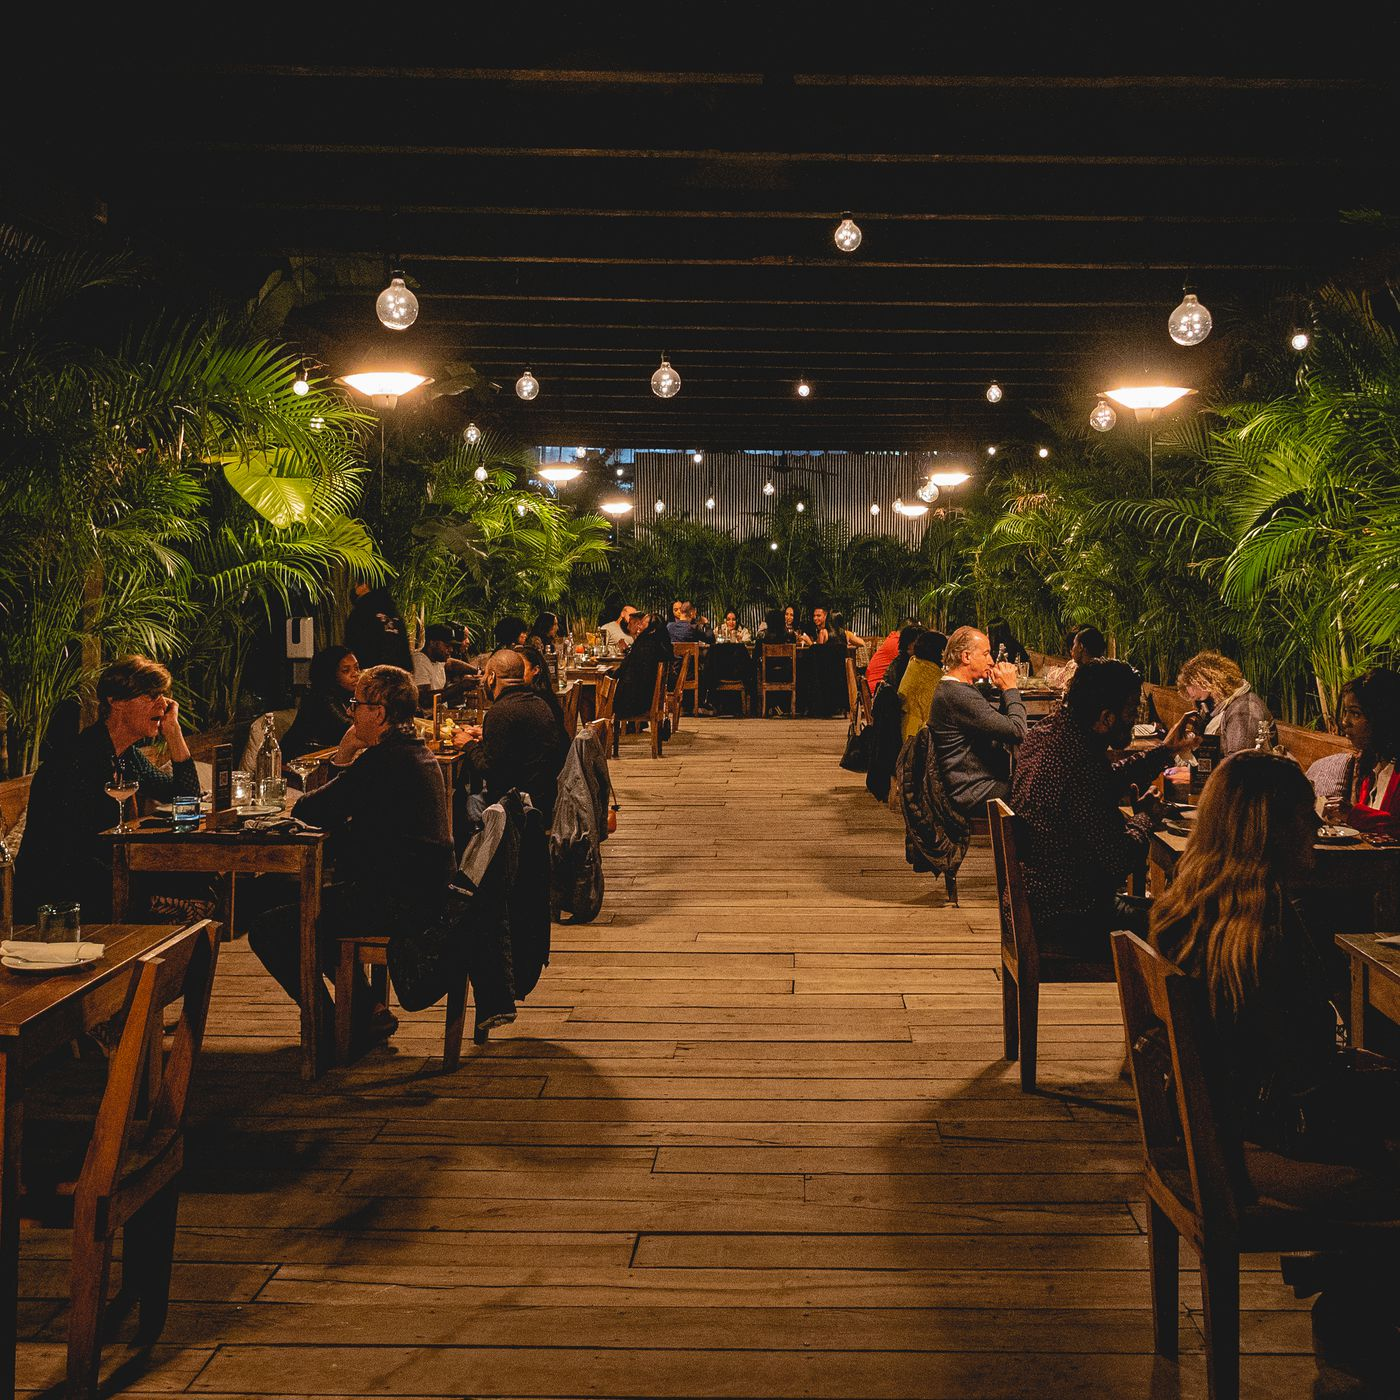 41 Nyc Restaurants With Heated Outdoor Dining Areas Eater Ny